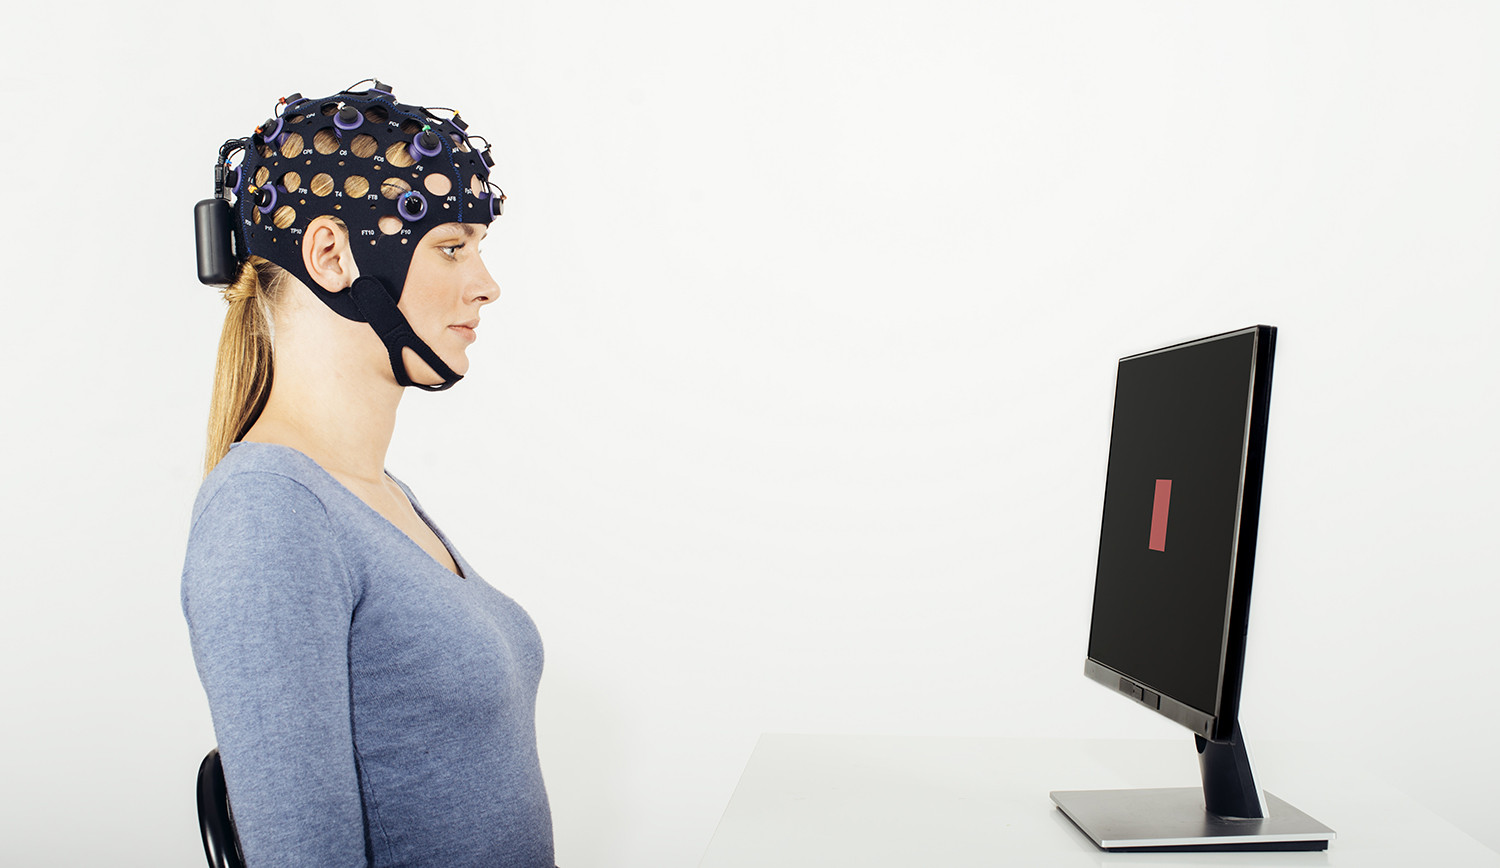 EEG connectivity